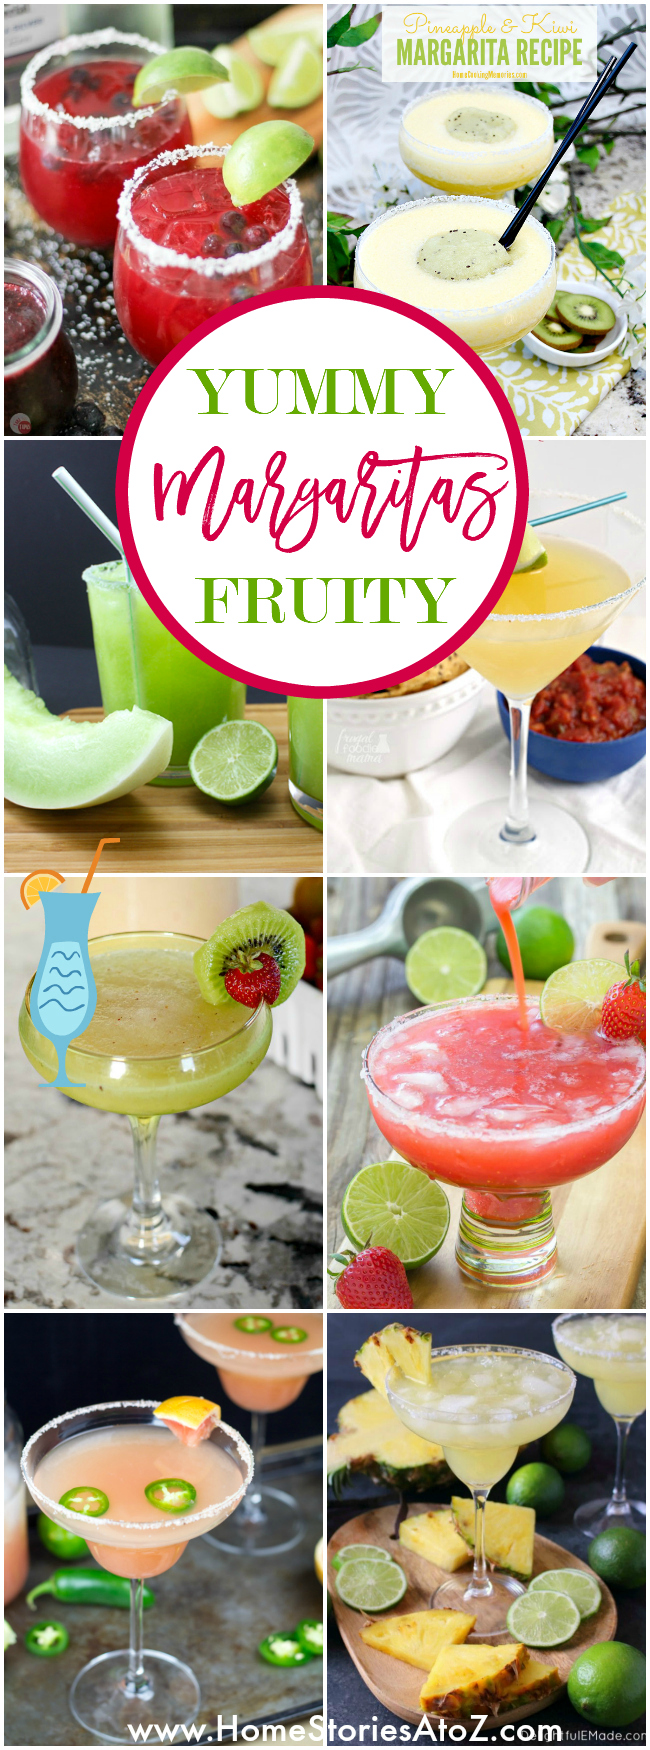 Yummy Fruity Margaritas - Home Stories A to Z